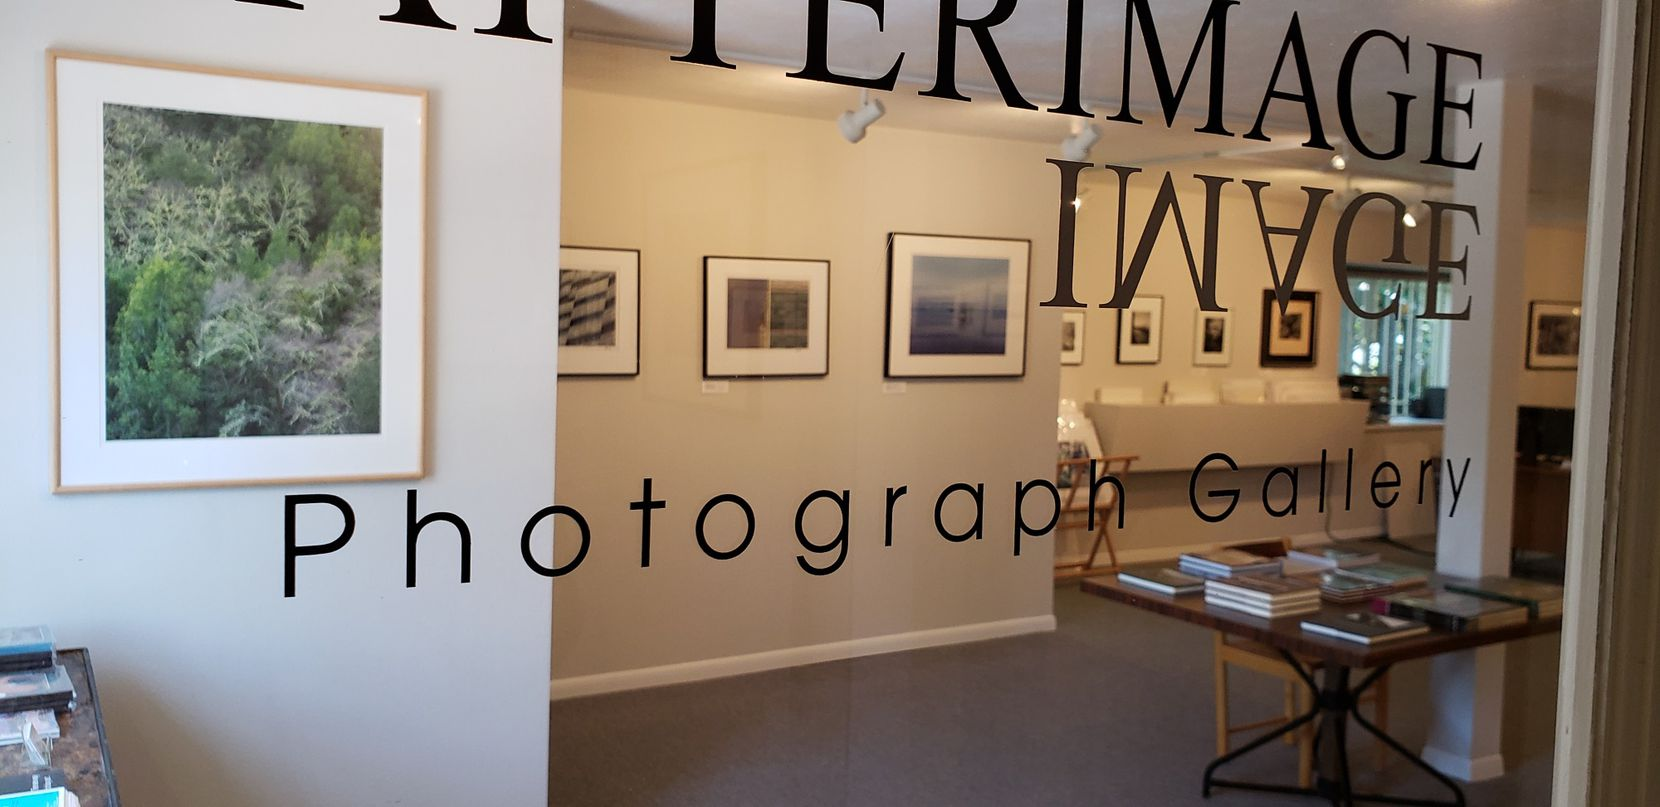 Afterimage Gallery moved to the second floor of its building on Fairmount Street in 2018. Owner Ben Breard first relocated to the downstairs portion of the building in 2016.